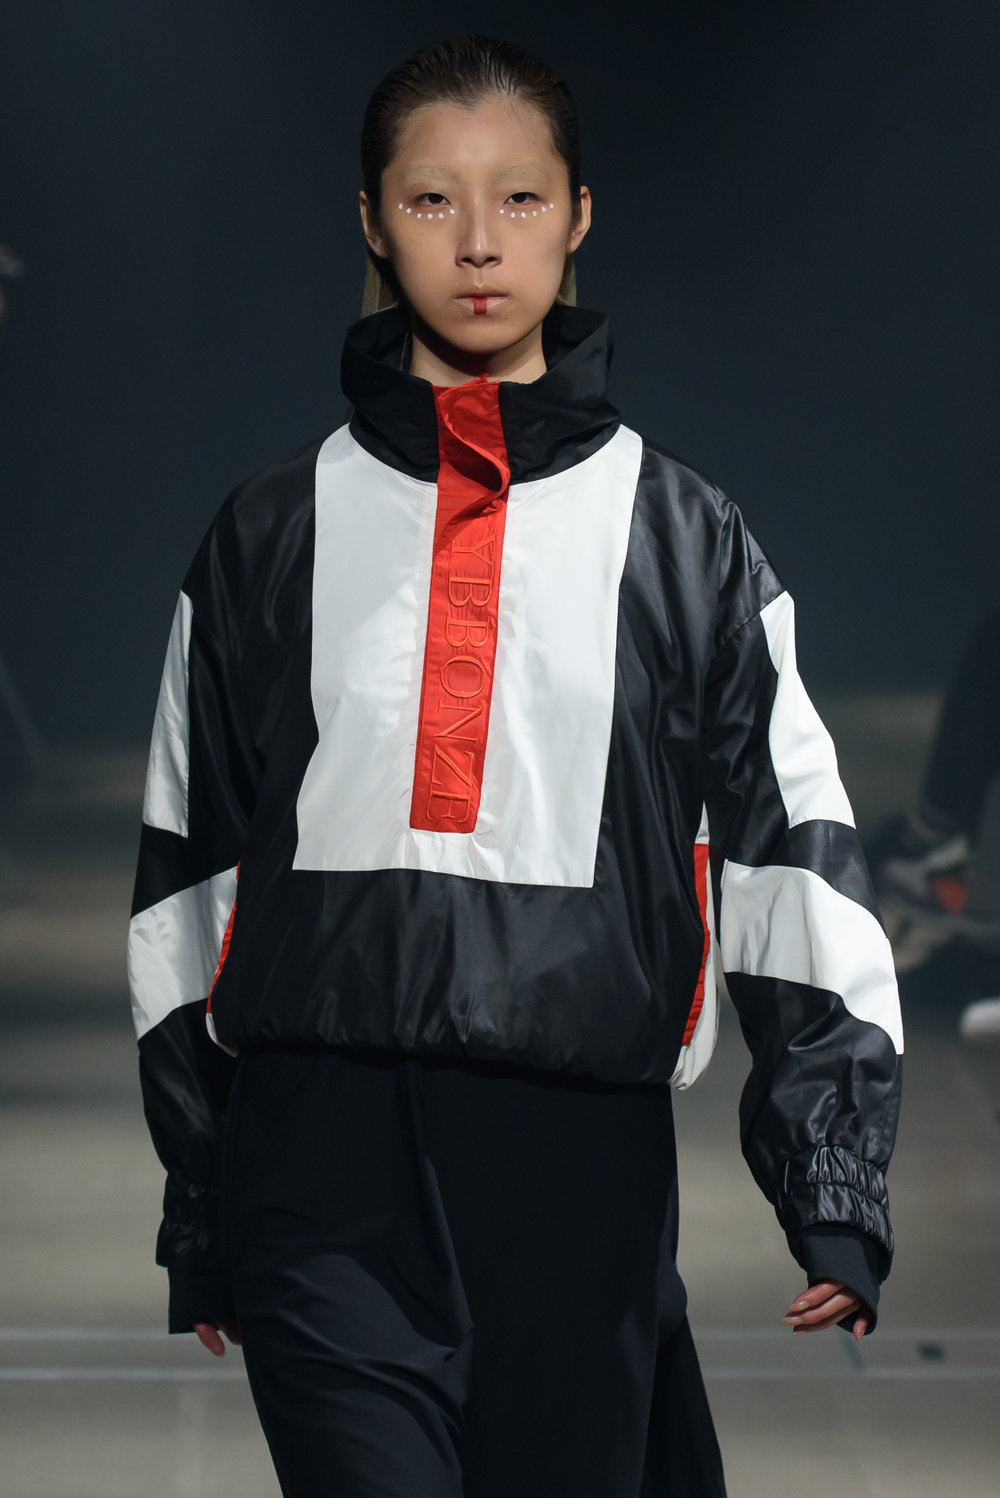 Street styled - There was a toughness within the street-sport inspired looks at the Paradox Spring 2018 runway show that gave the whole collection an appealing anti-establishment feel. It was aggressive, yet still comfortable, and relaxed but still very well designed. The styling of the looks added a global feel that brought the whole thing a fresh and modern element.